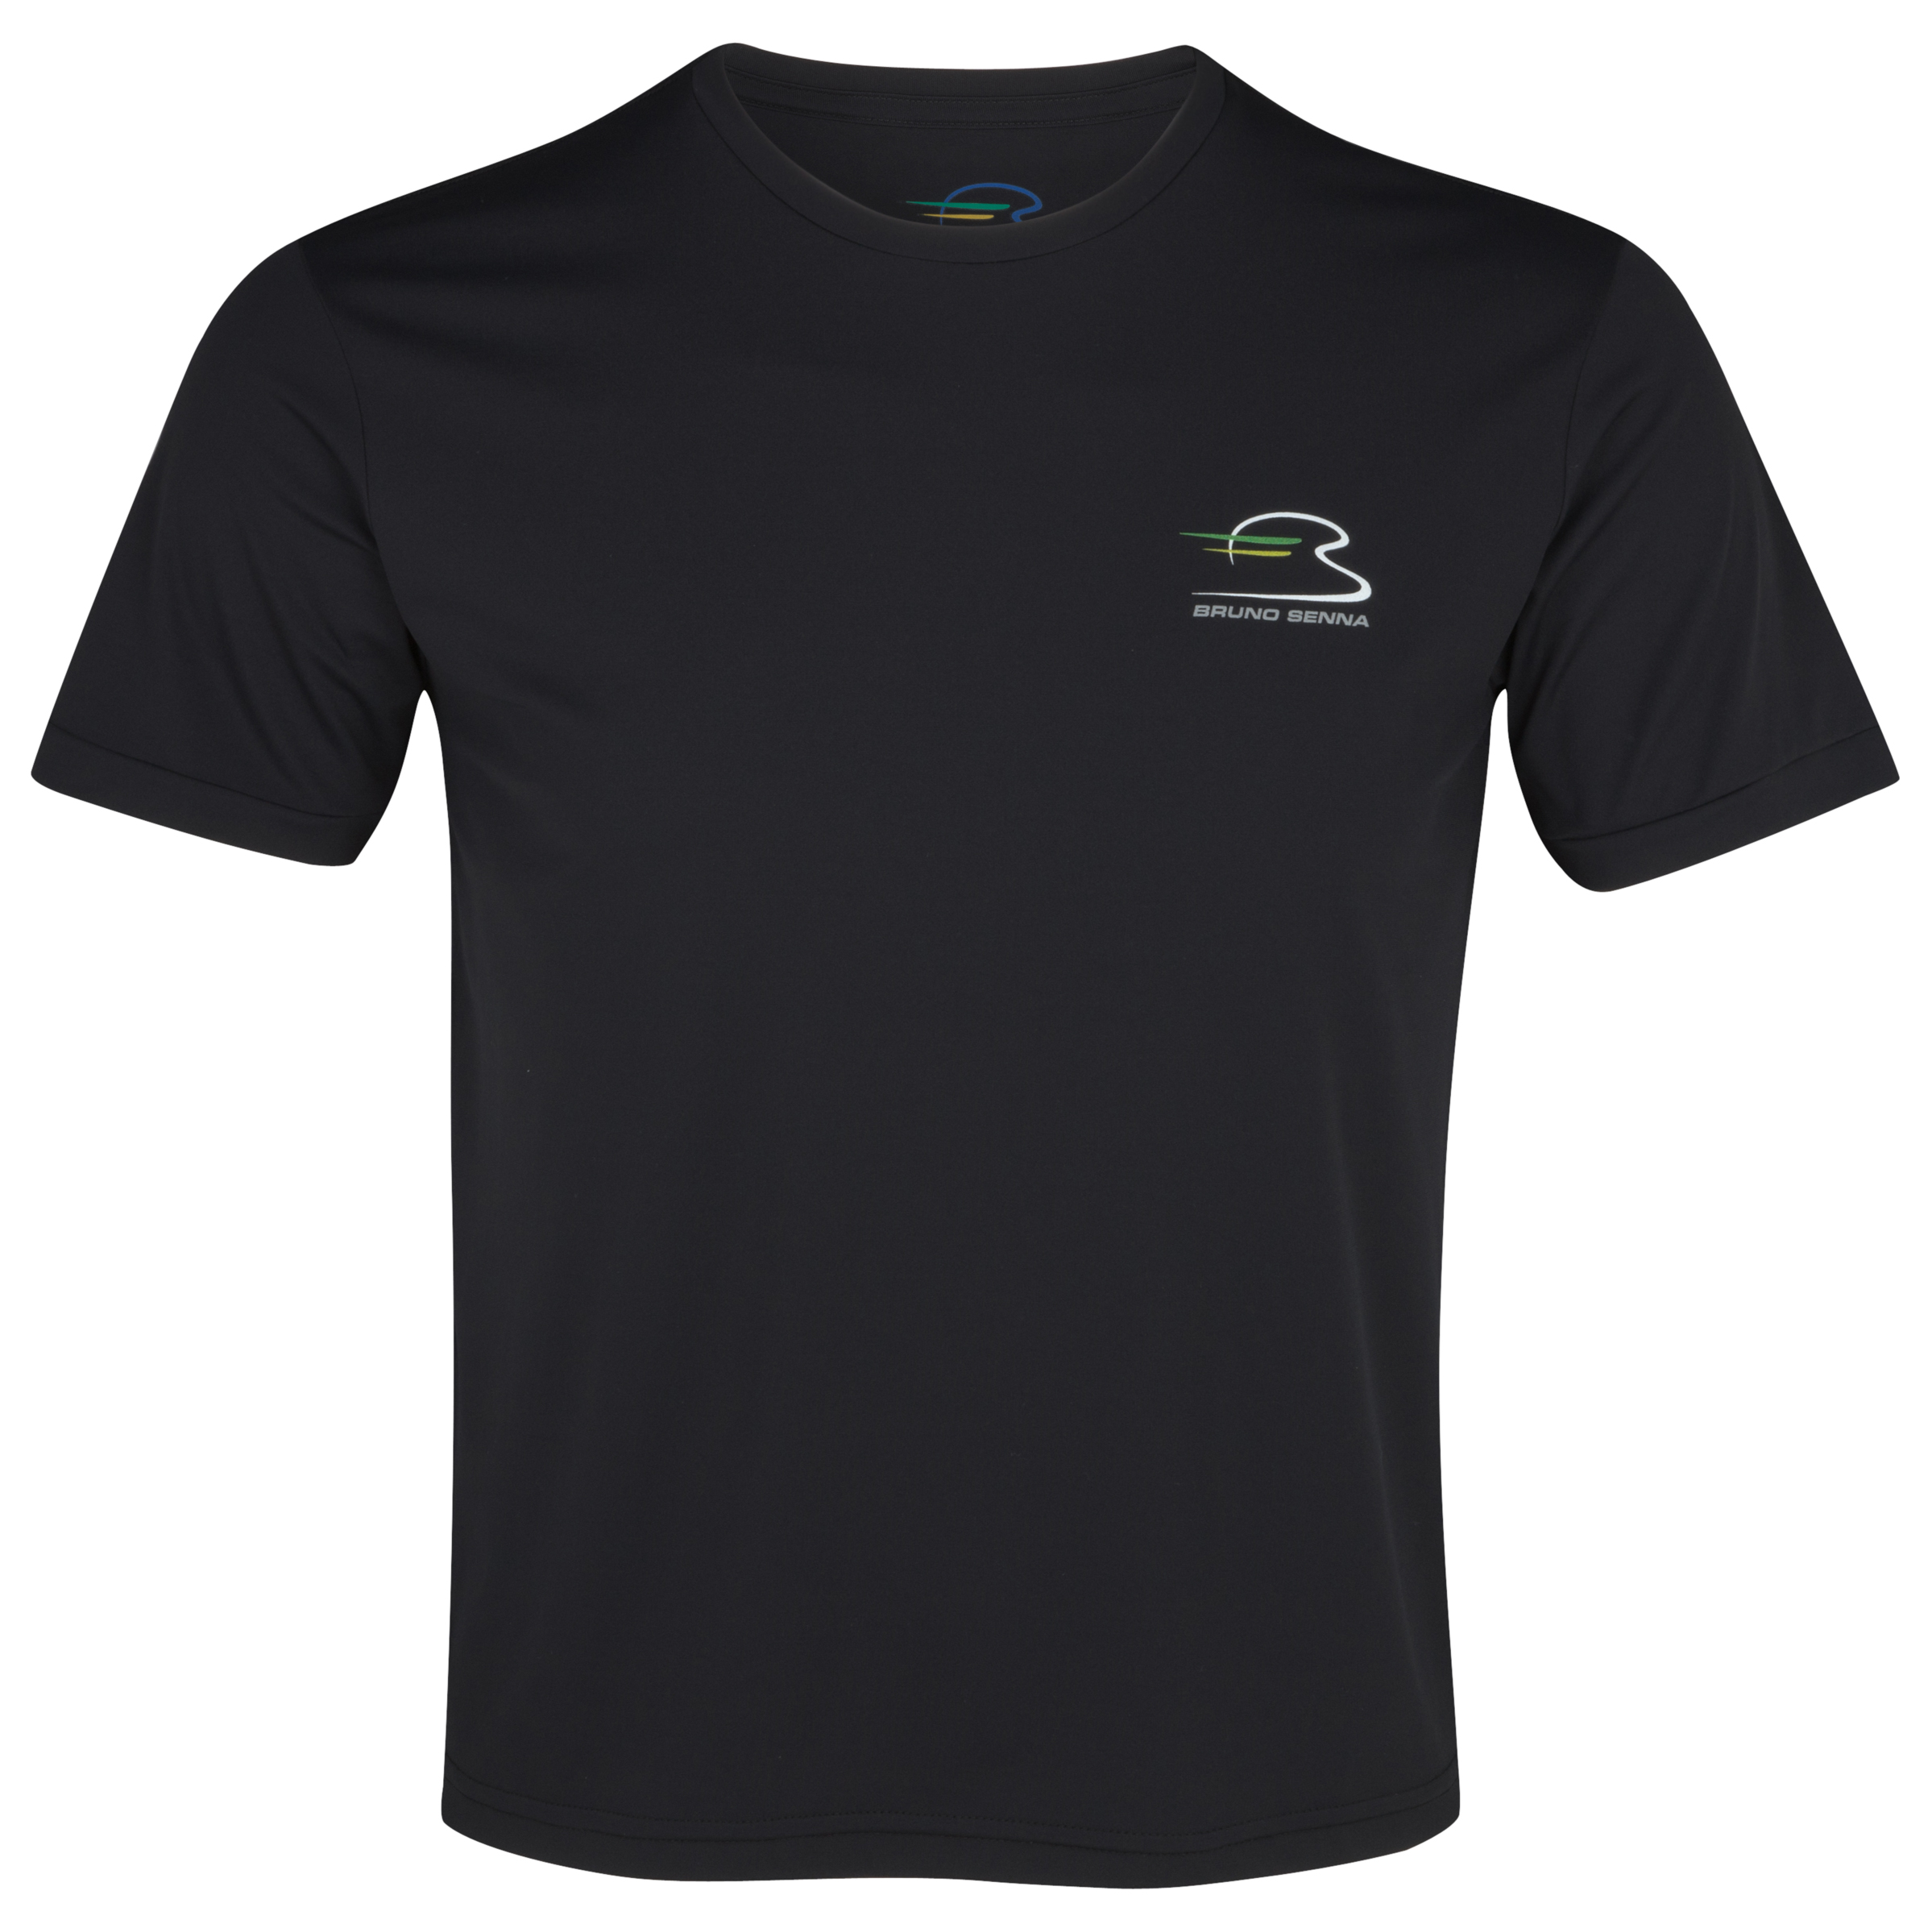 Bruno Senna Dry Fit T-Shirt - Black